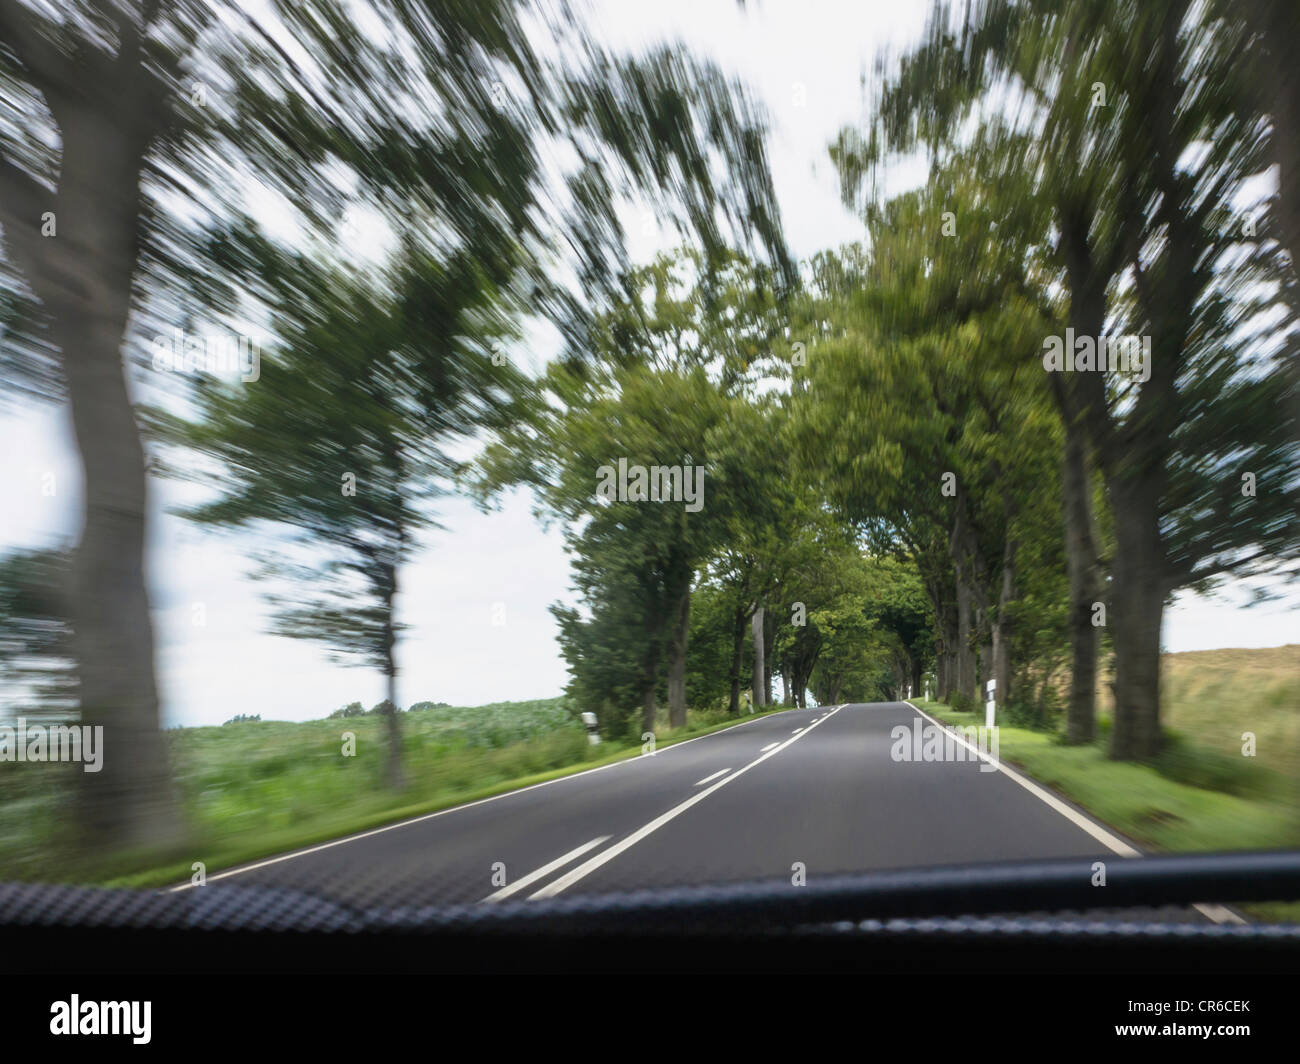 Northern Germany, Vehicle in blurred motion - Stock Image